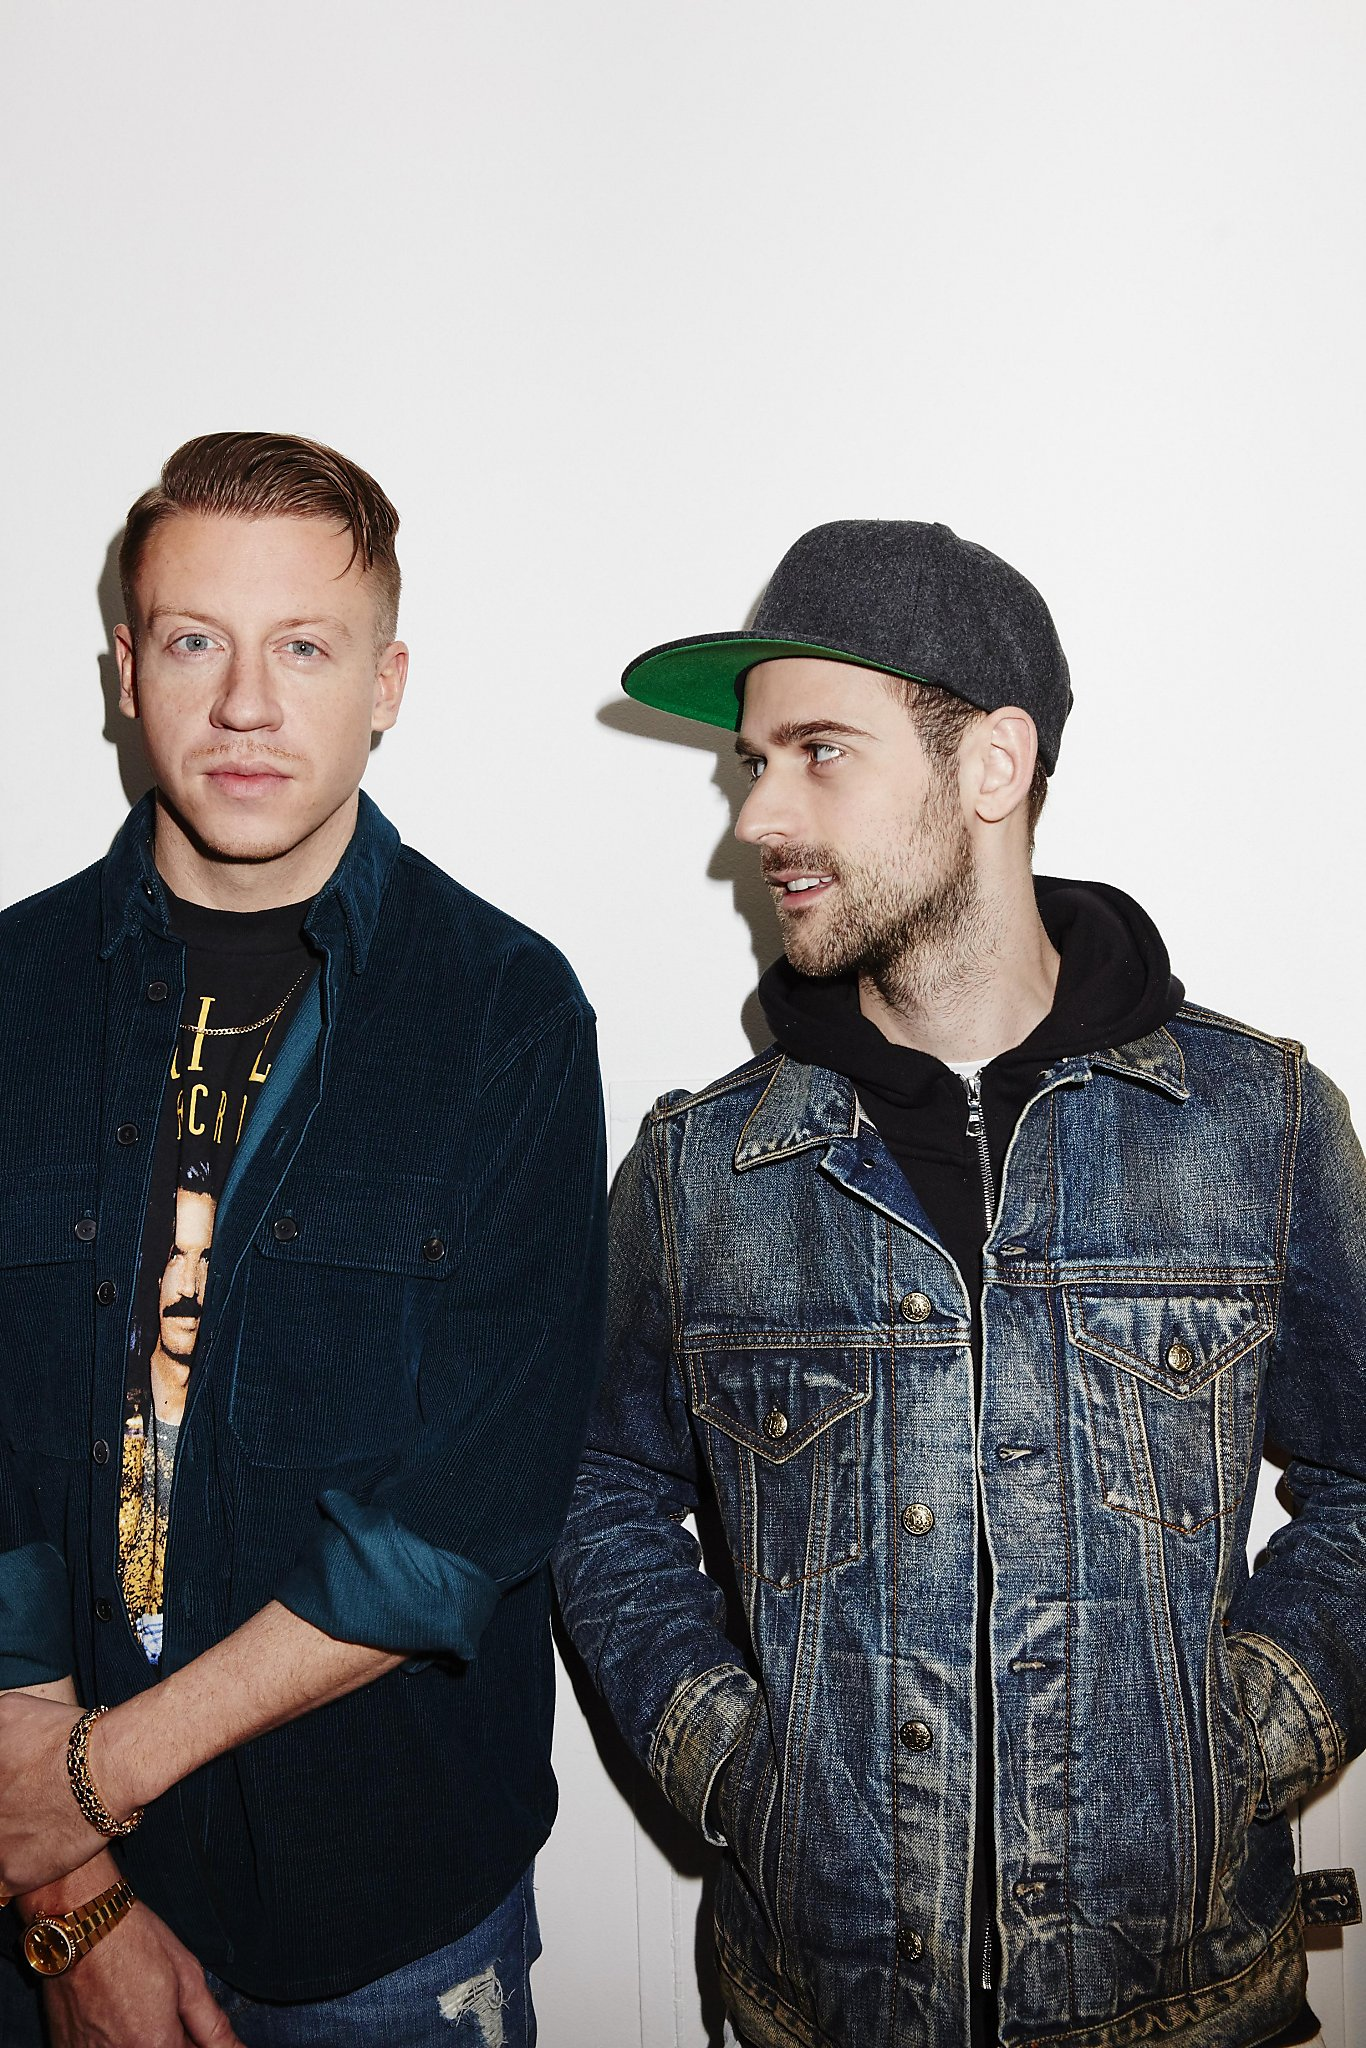 macklemore & ryan lewis take their 'unruly mess' to s.f. - sfgate